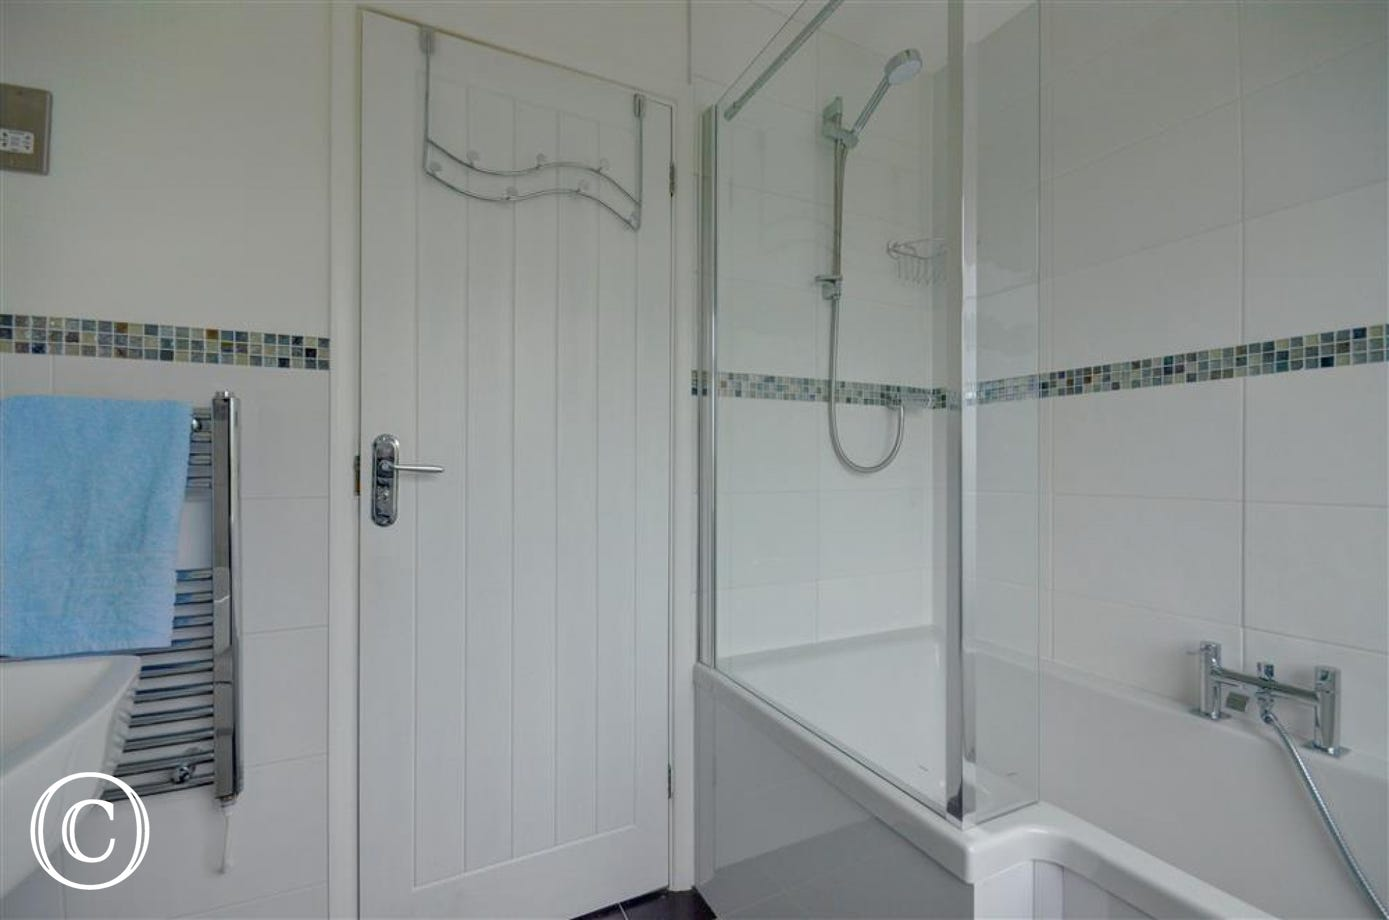 Bathroom - View 2